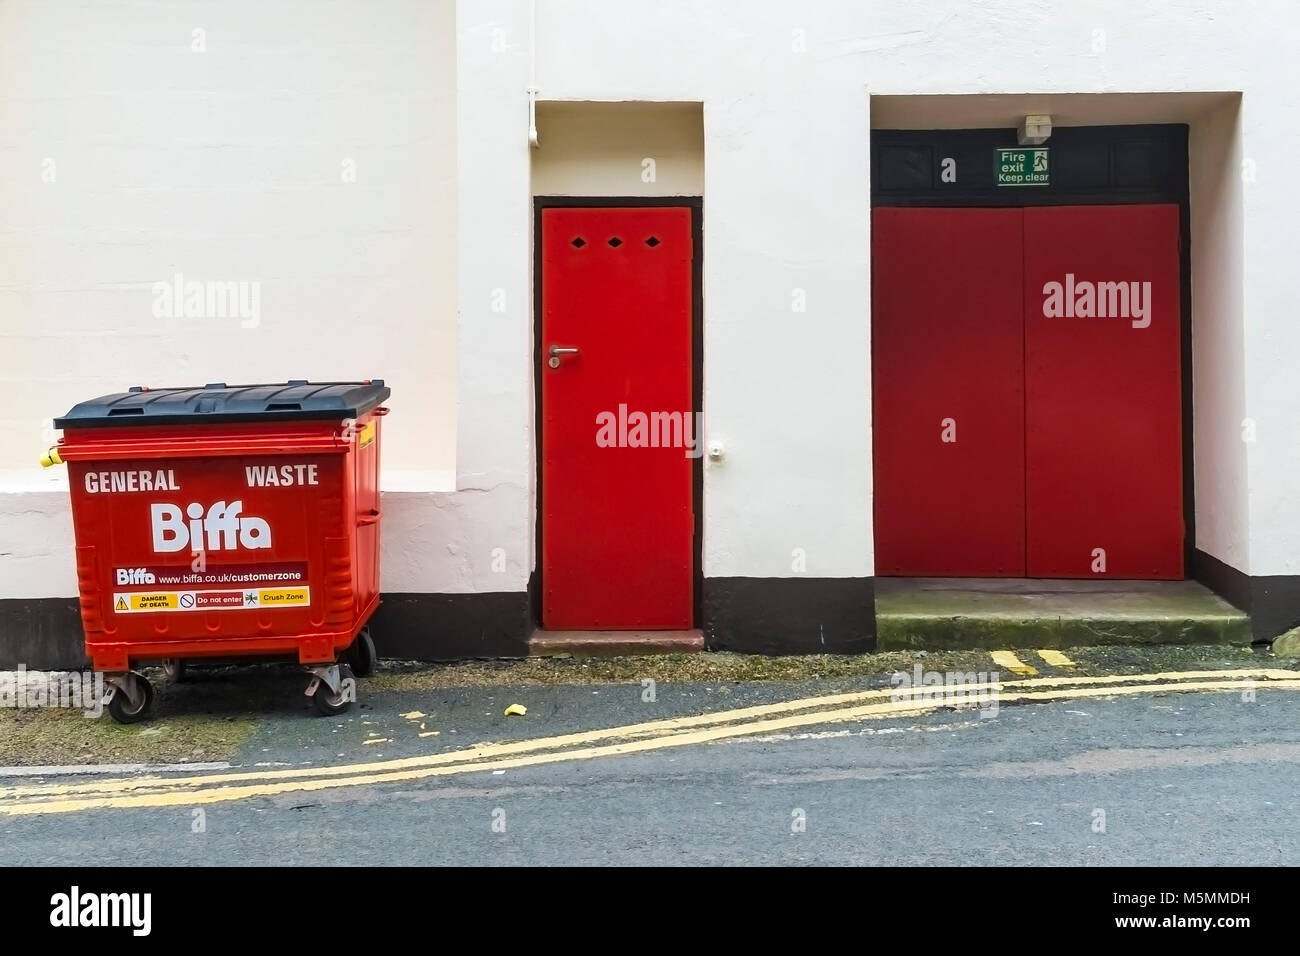 Two red doors and a red Biffa commercial waste bin. - Stock Image